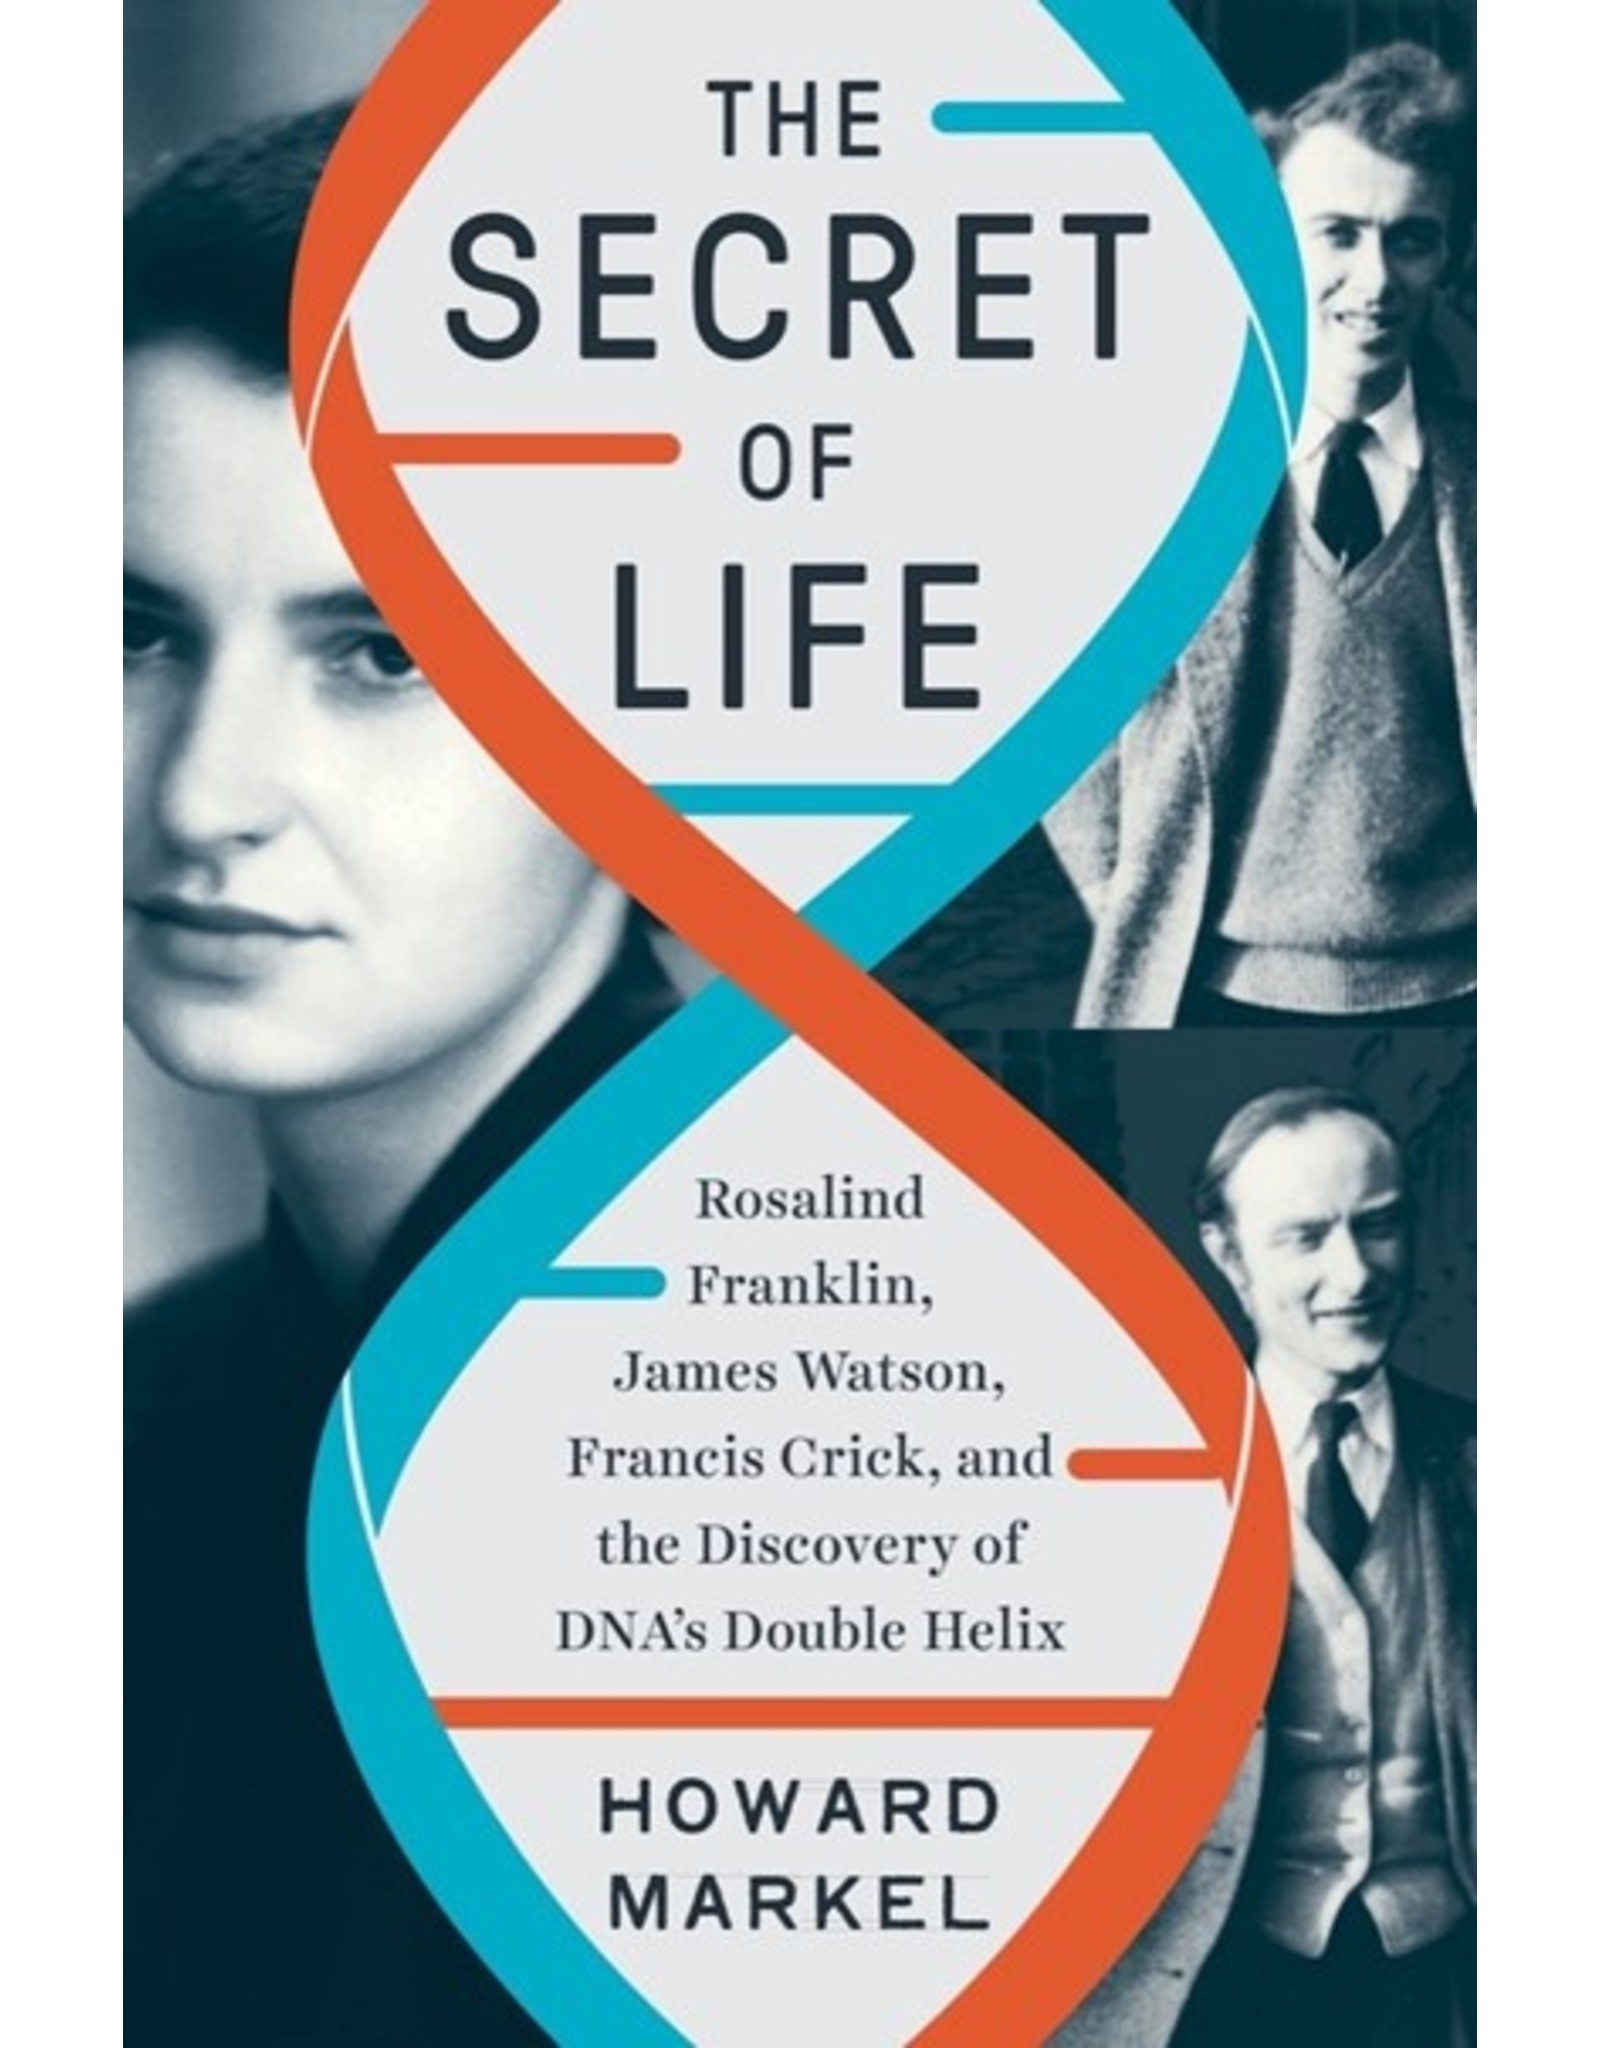 Books The Secret of Life: Rosalind Franklin, James Watson and Francis Crick and the Discovery of the DNA's Double Helix by Howard Markel